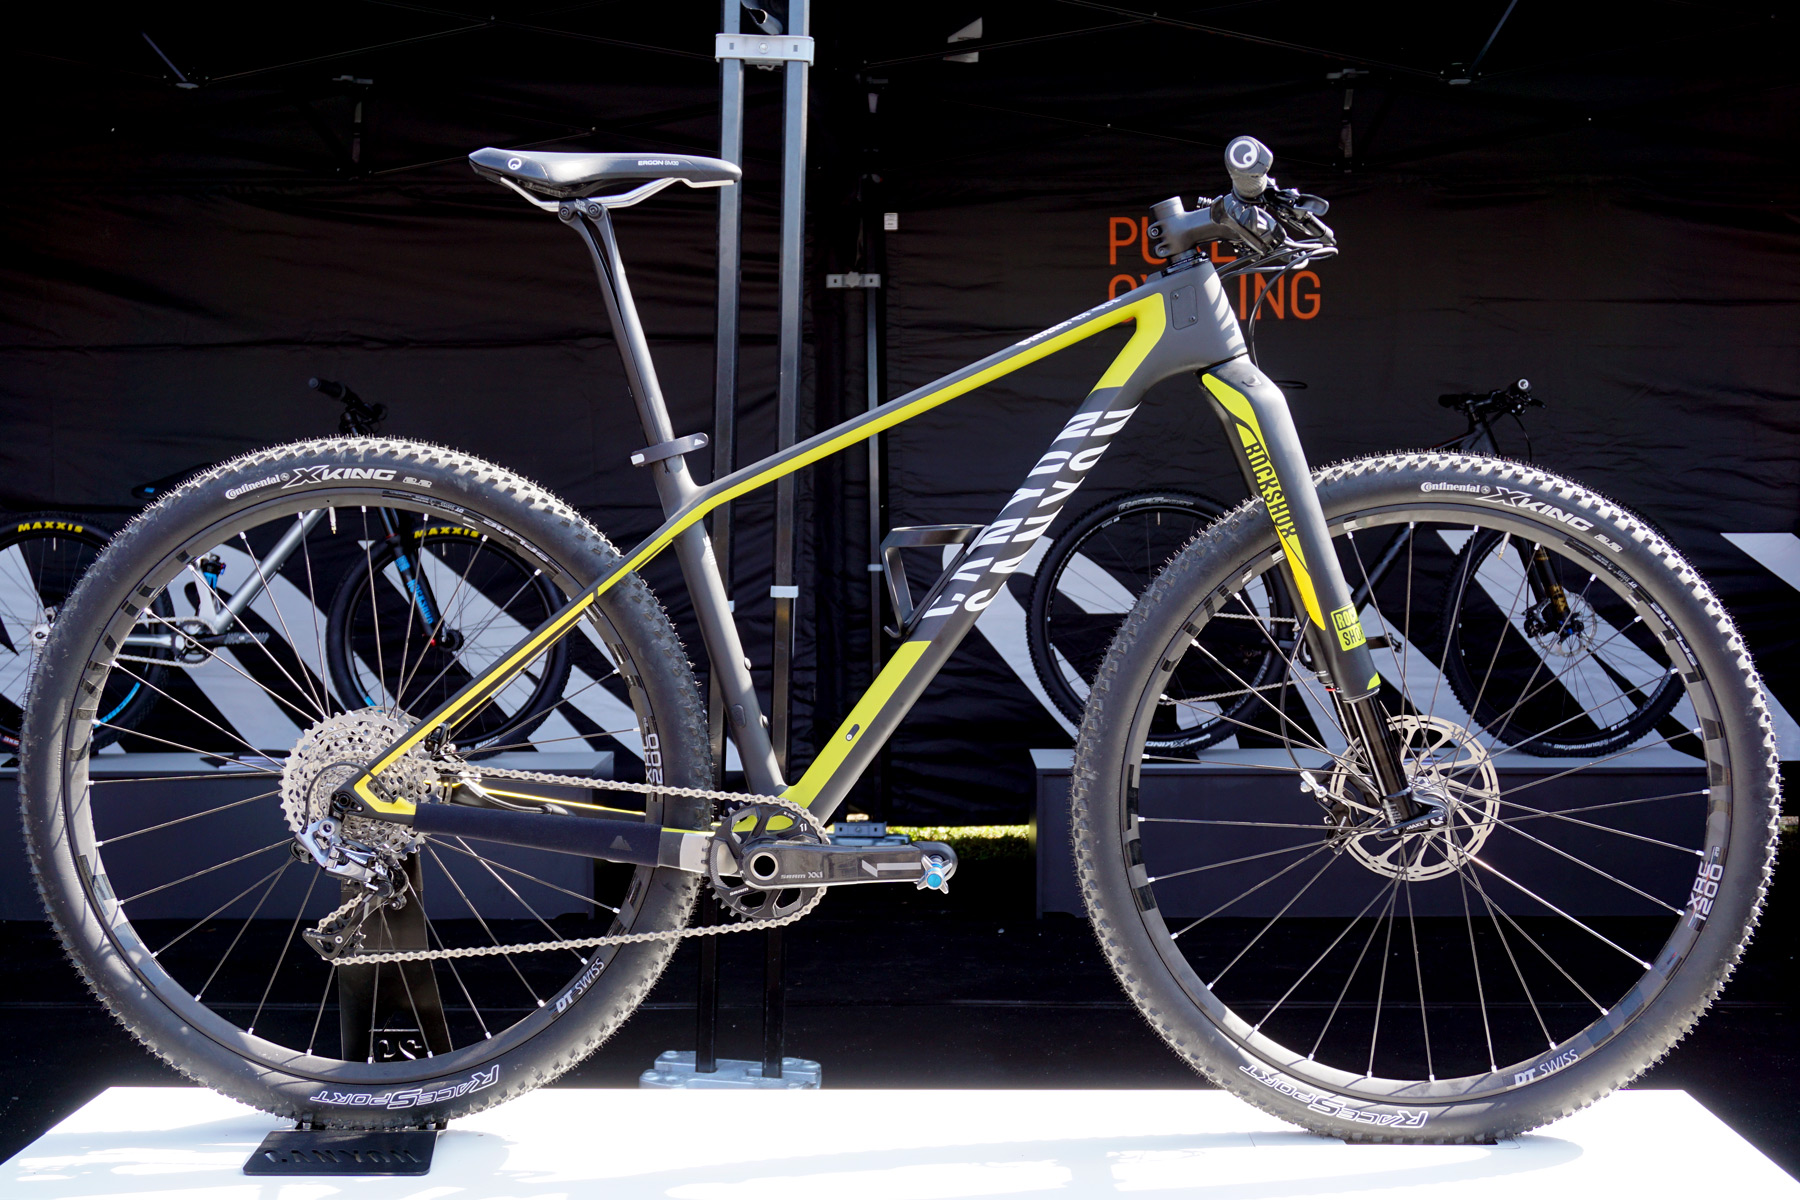 EB15: Canyon leads several mountain updates with new Exceed CF SLX